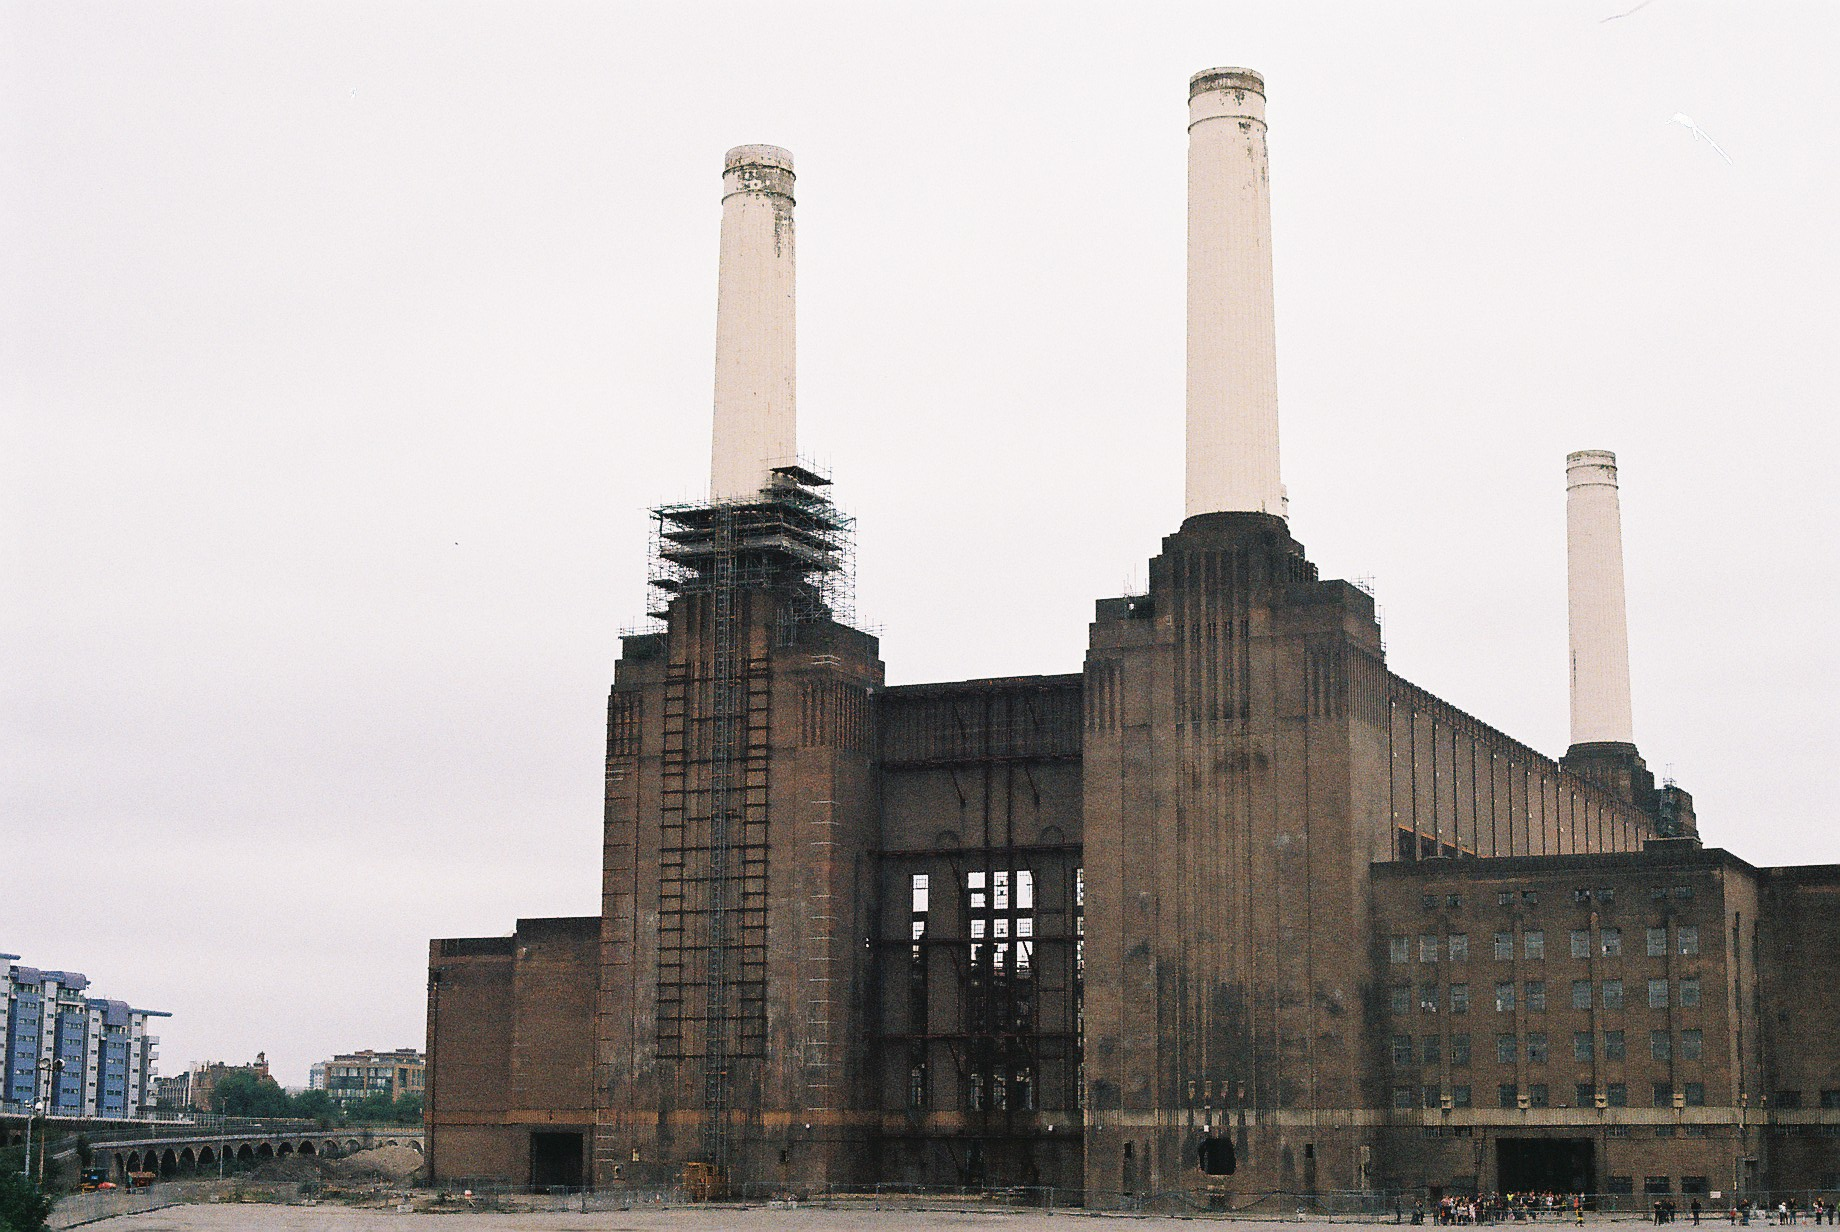 Fred+Howarth+Photography_Battersea+Power+Station_35mm.JPG